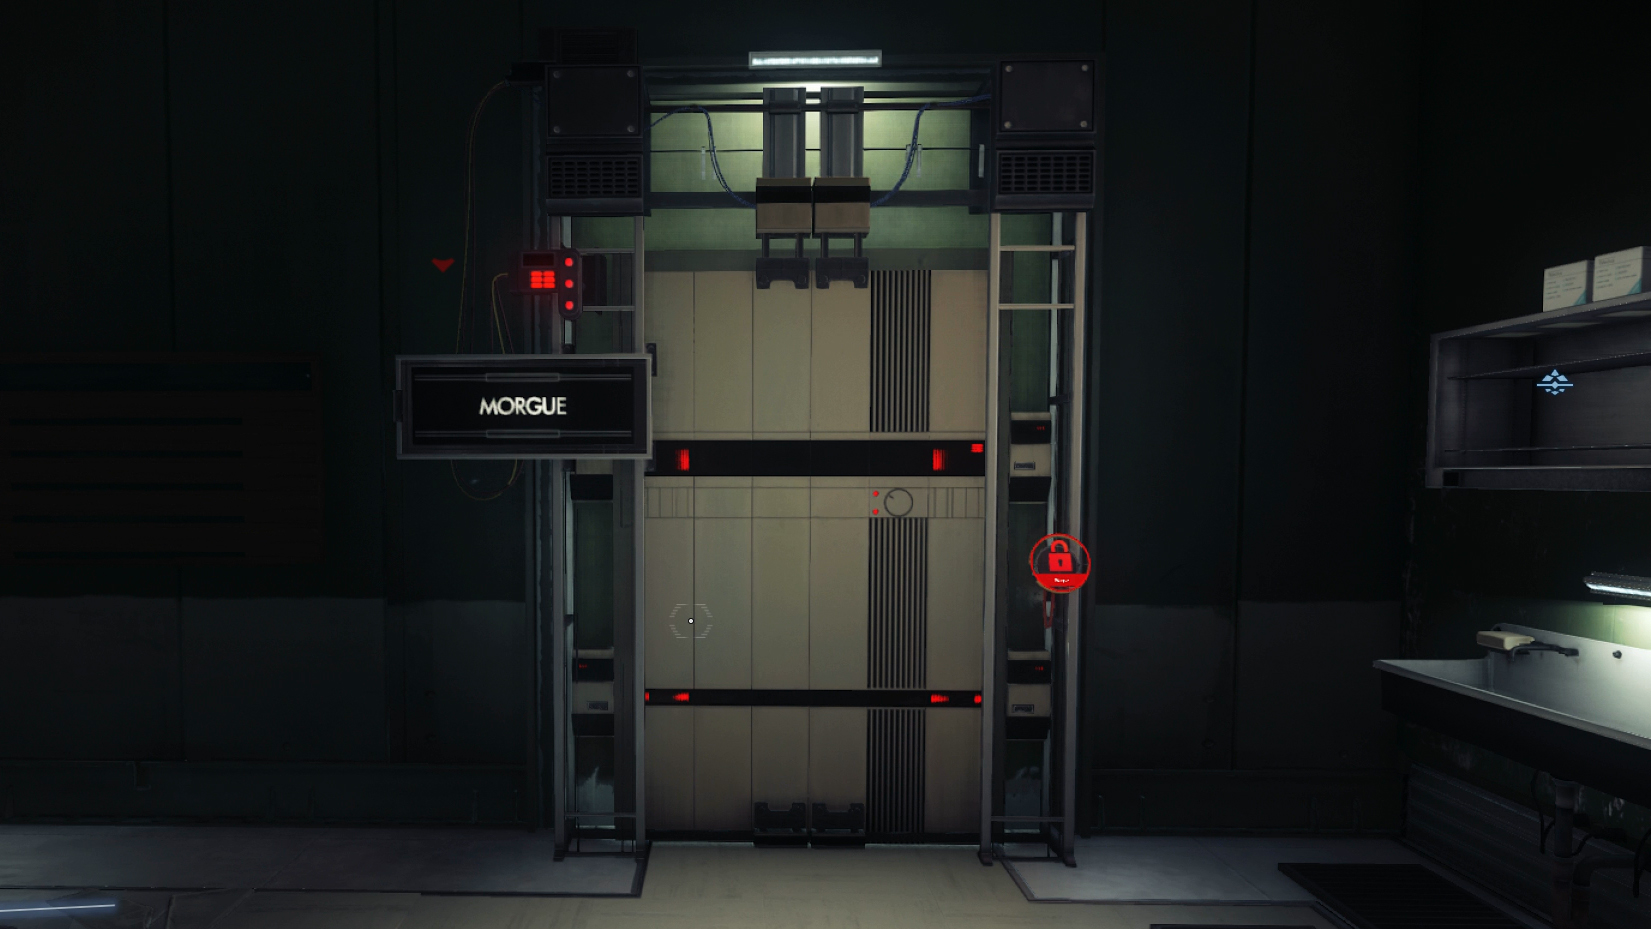 After making your way through the Psychotronics, you will come across a Morgue that is locked by keycard.